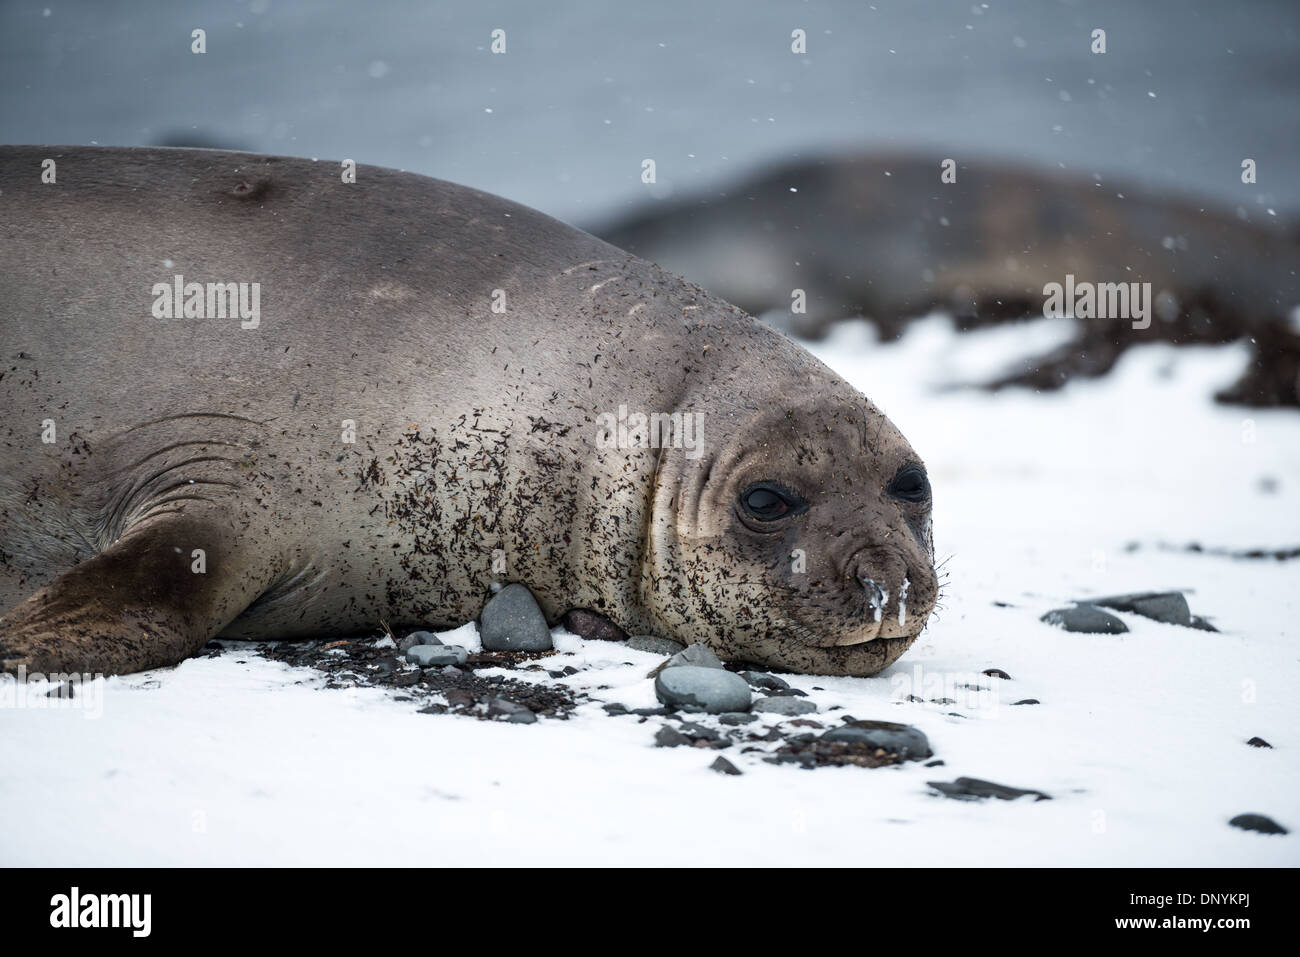 ANTARCTICA - A Southern Elephant seal lies in the snow on the beach on Livingston Island in the South Shetland Islands, Antarctica. - Stock Image